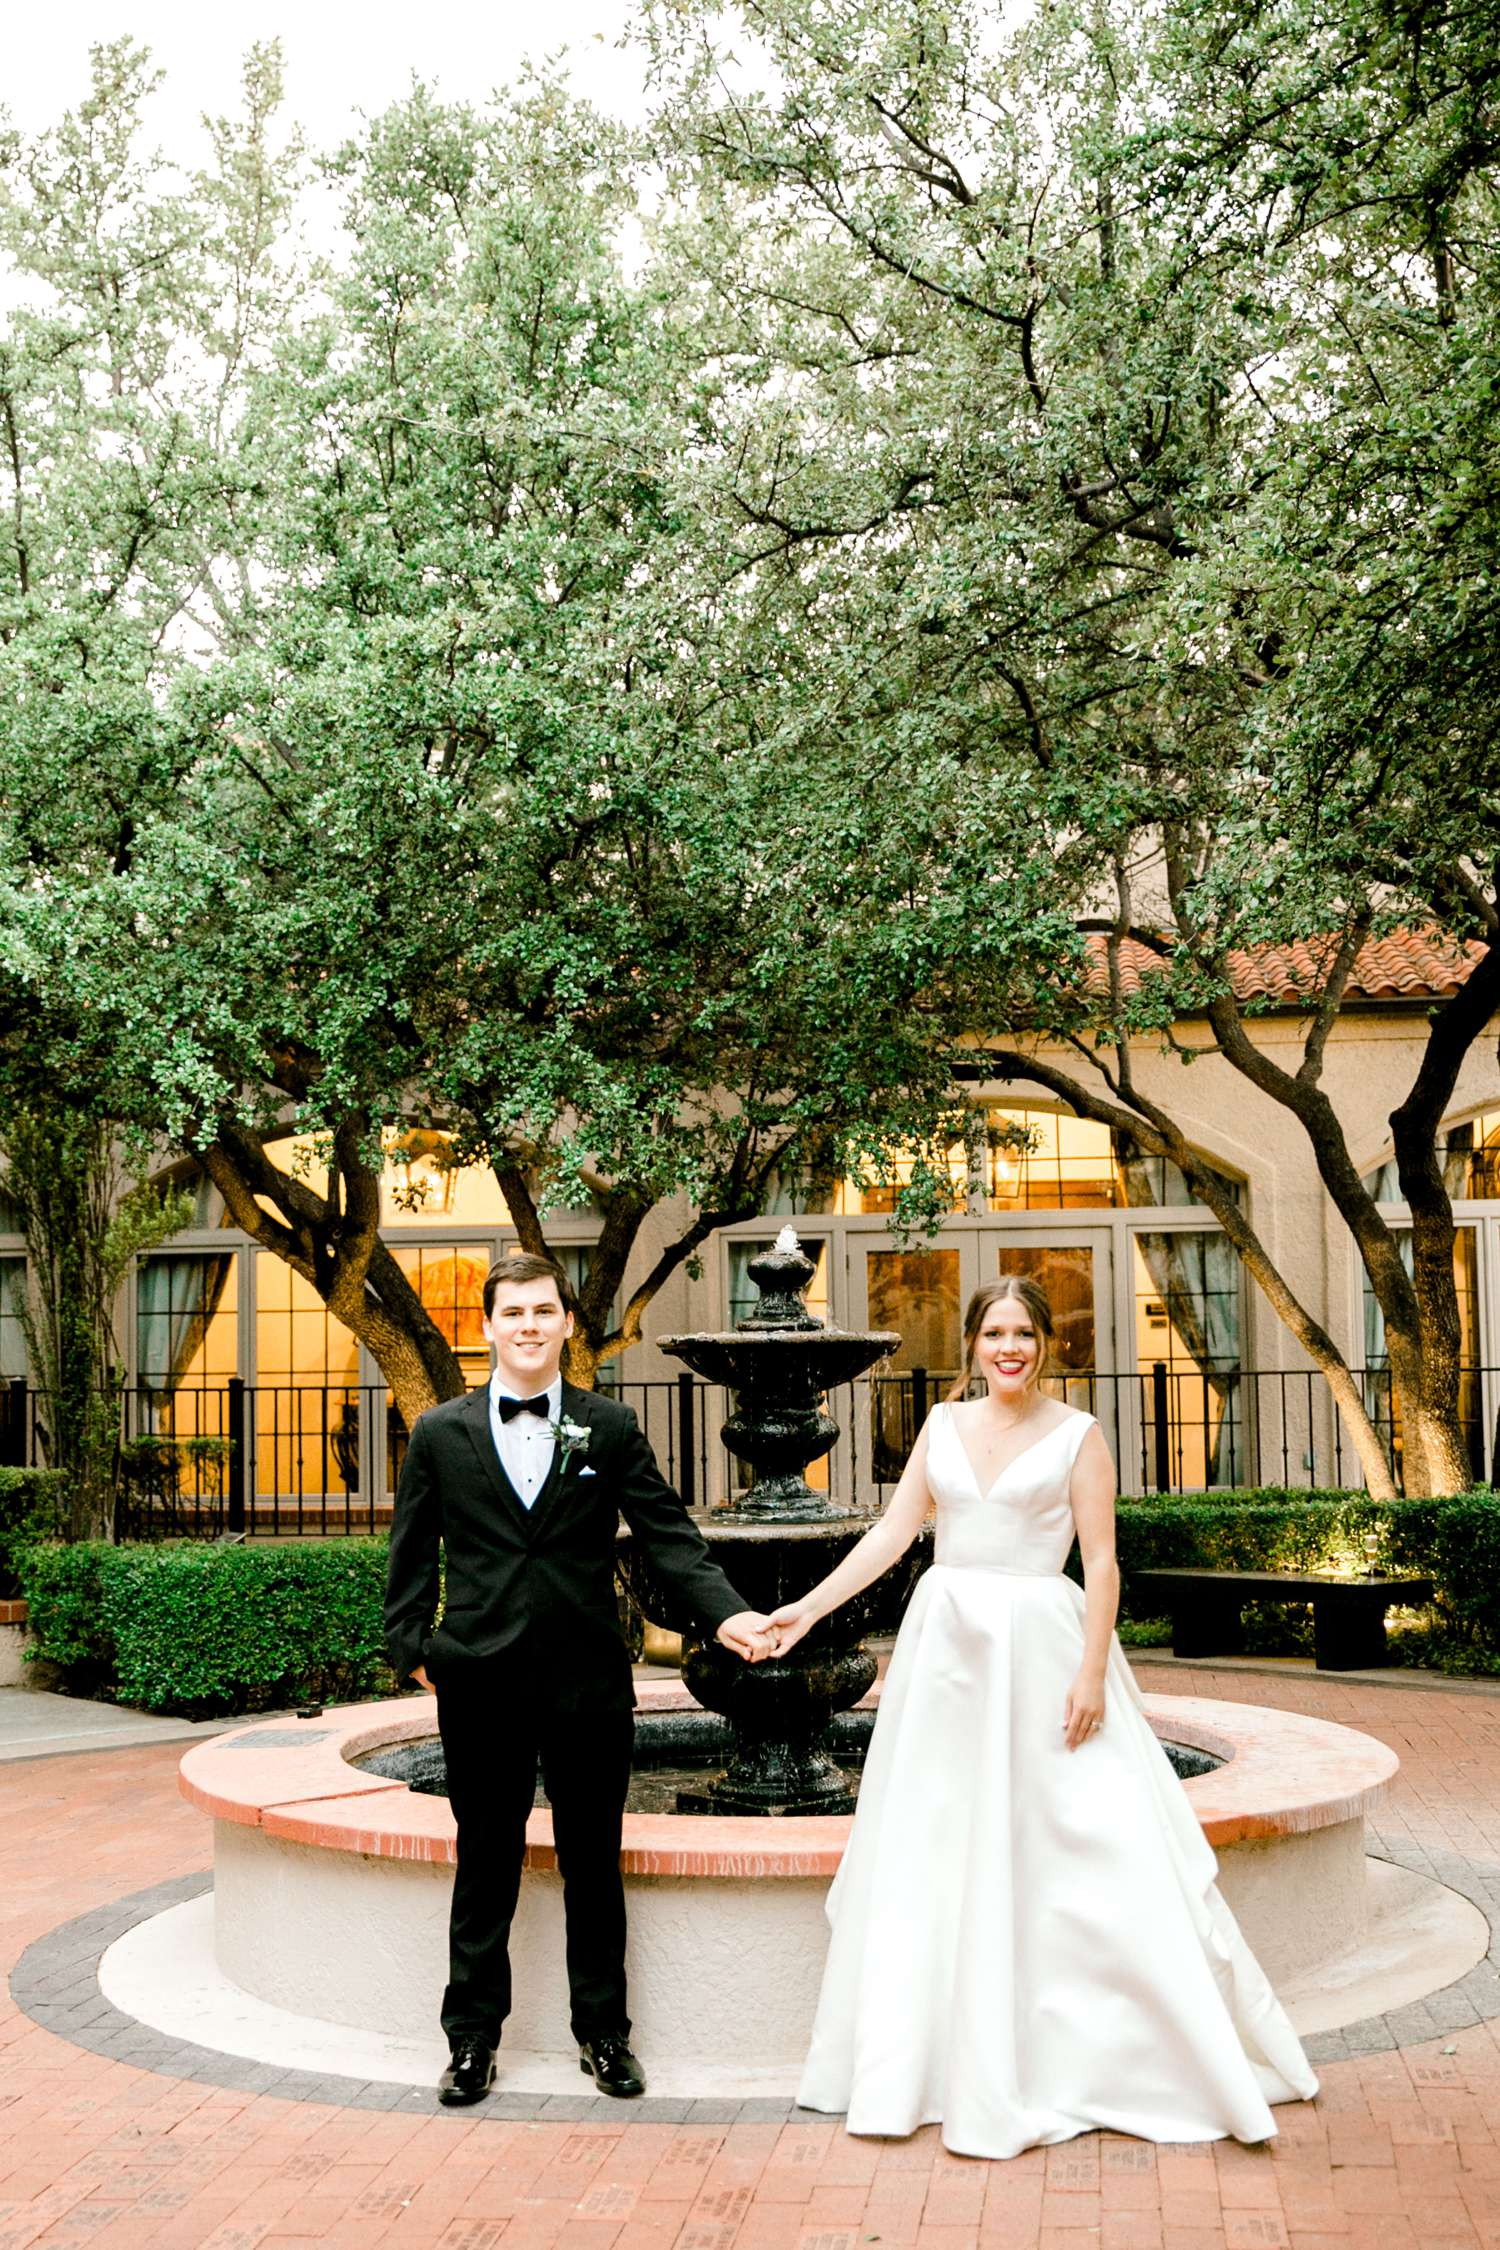 HANNAH+CRAIG+CHILDS+TEXAS+TECH+WEDDING+ALLEEJ+LUBBOCK+PHOTOGRAPHER_0137.jpg